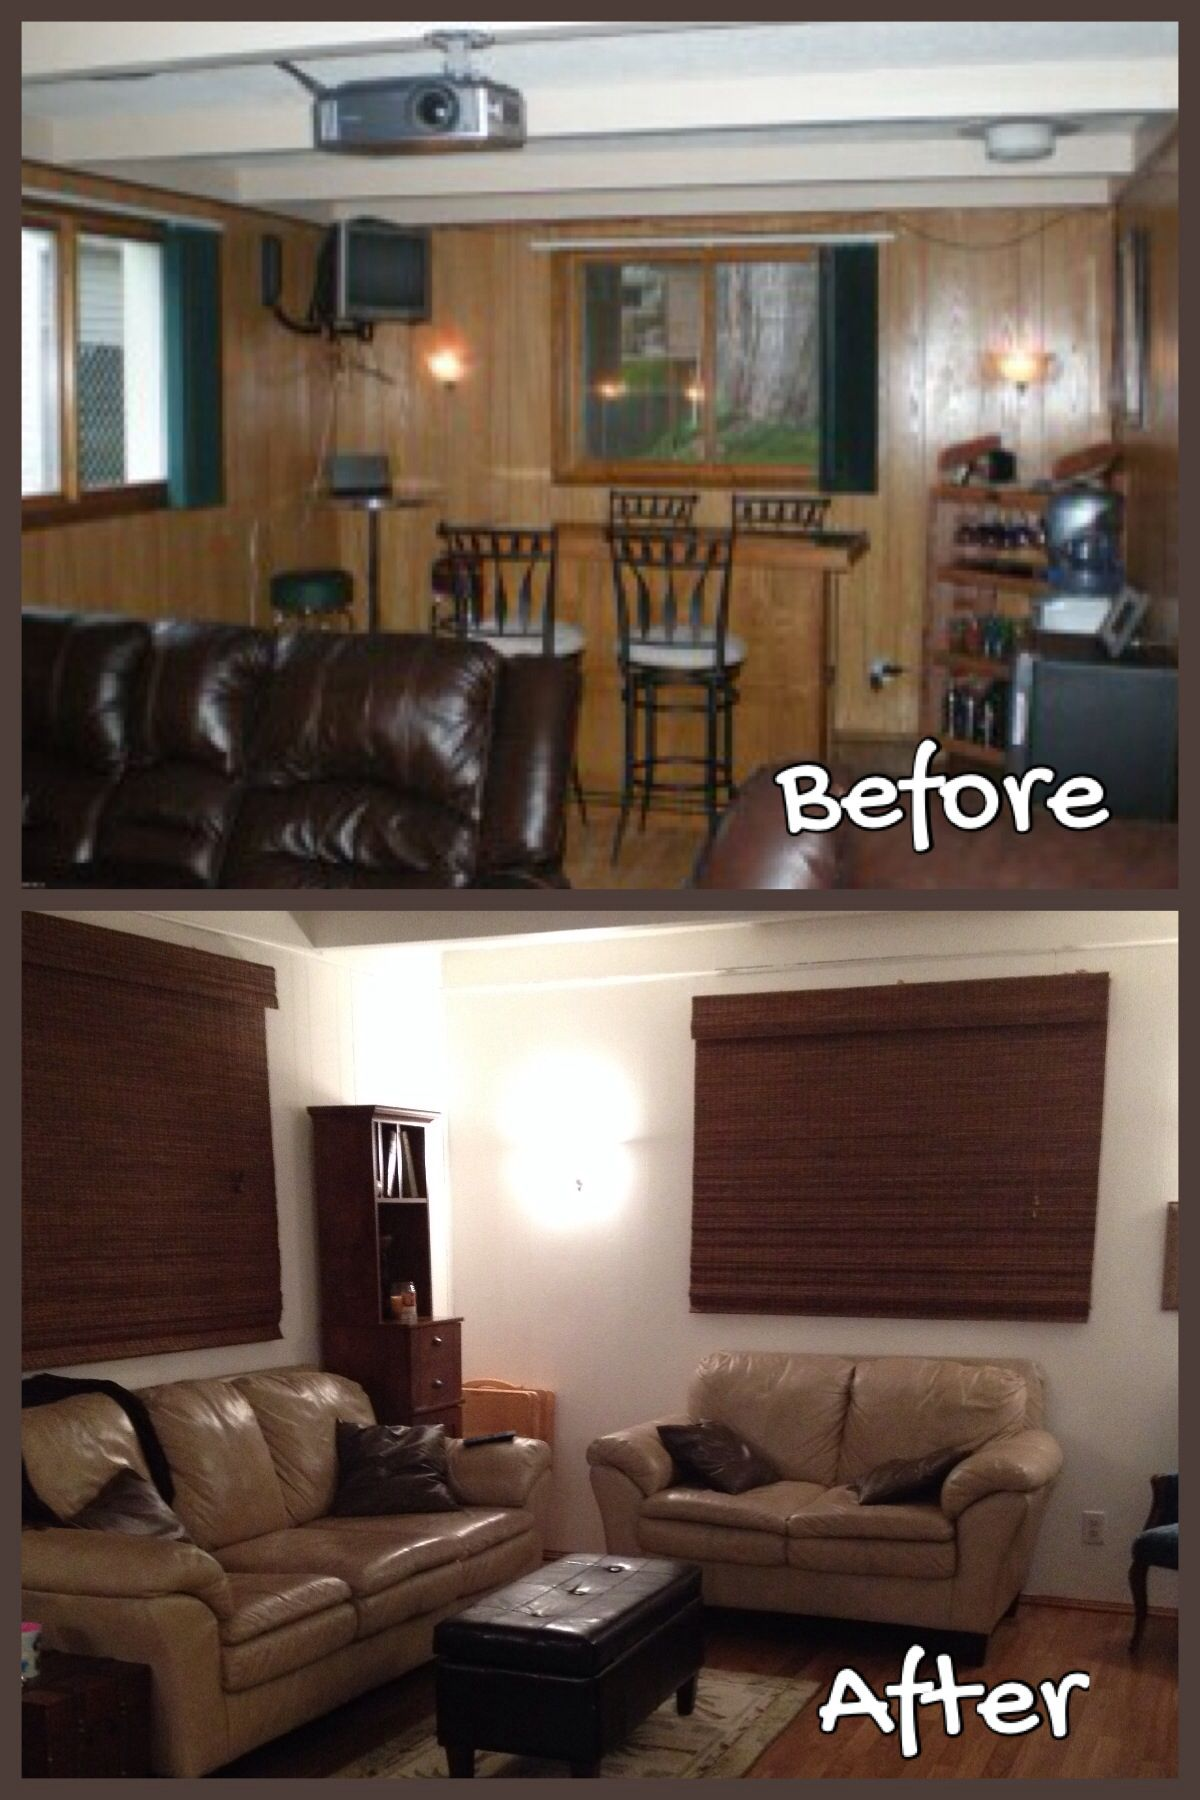 Painted Paneling Living Room: Design Elements: -Painted Wood Paneling White To Brighten